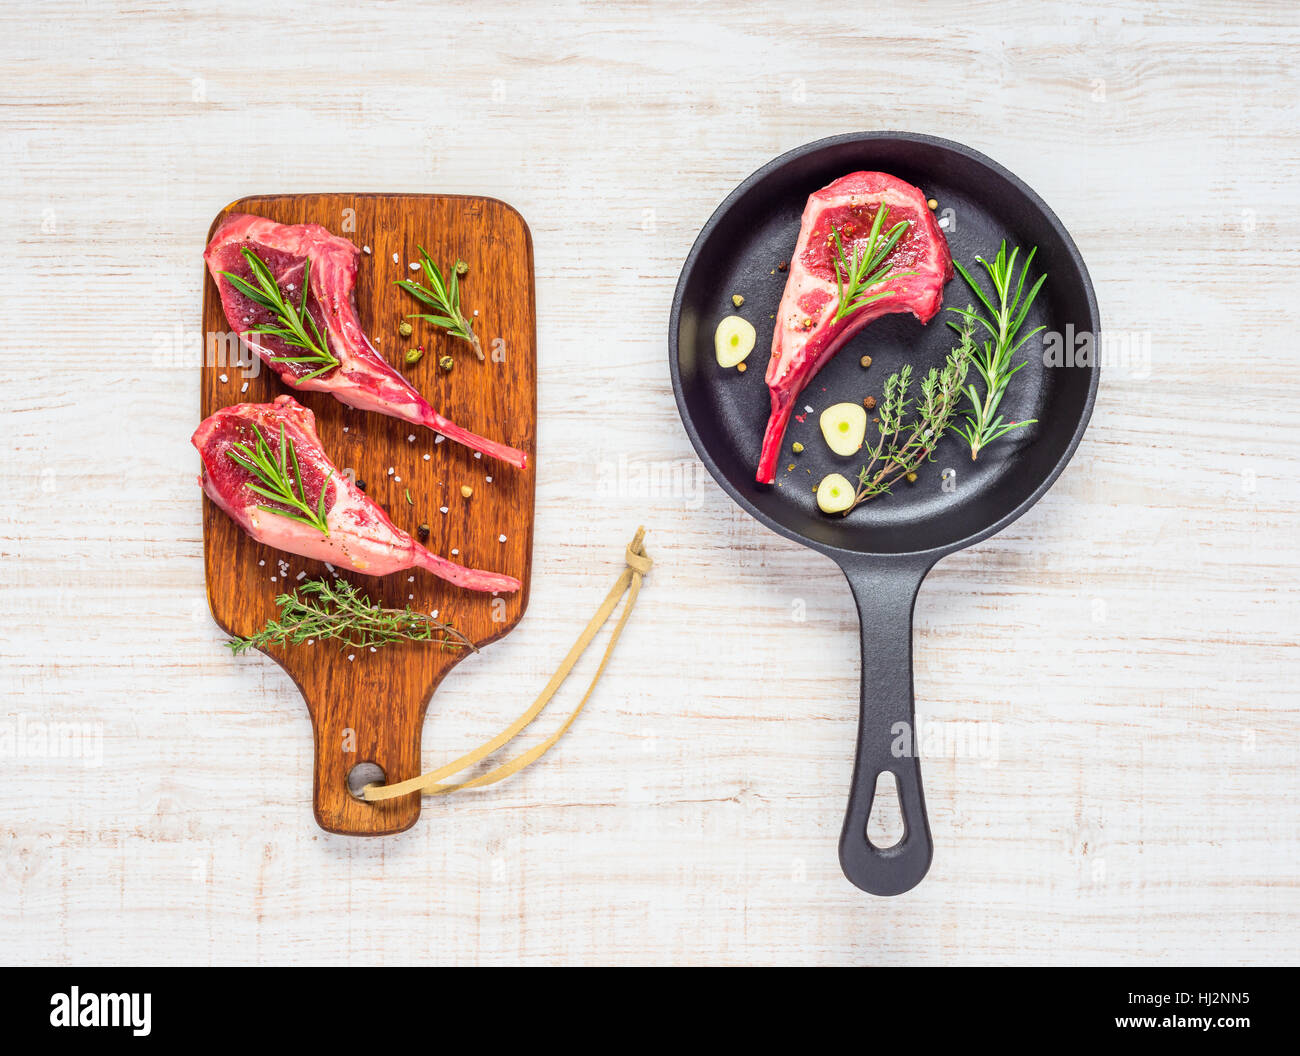 Lamb Chops Ribs Meat in Frying Pan and on Wooden Chopping Board in Top View Stock Photo